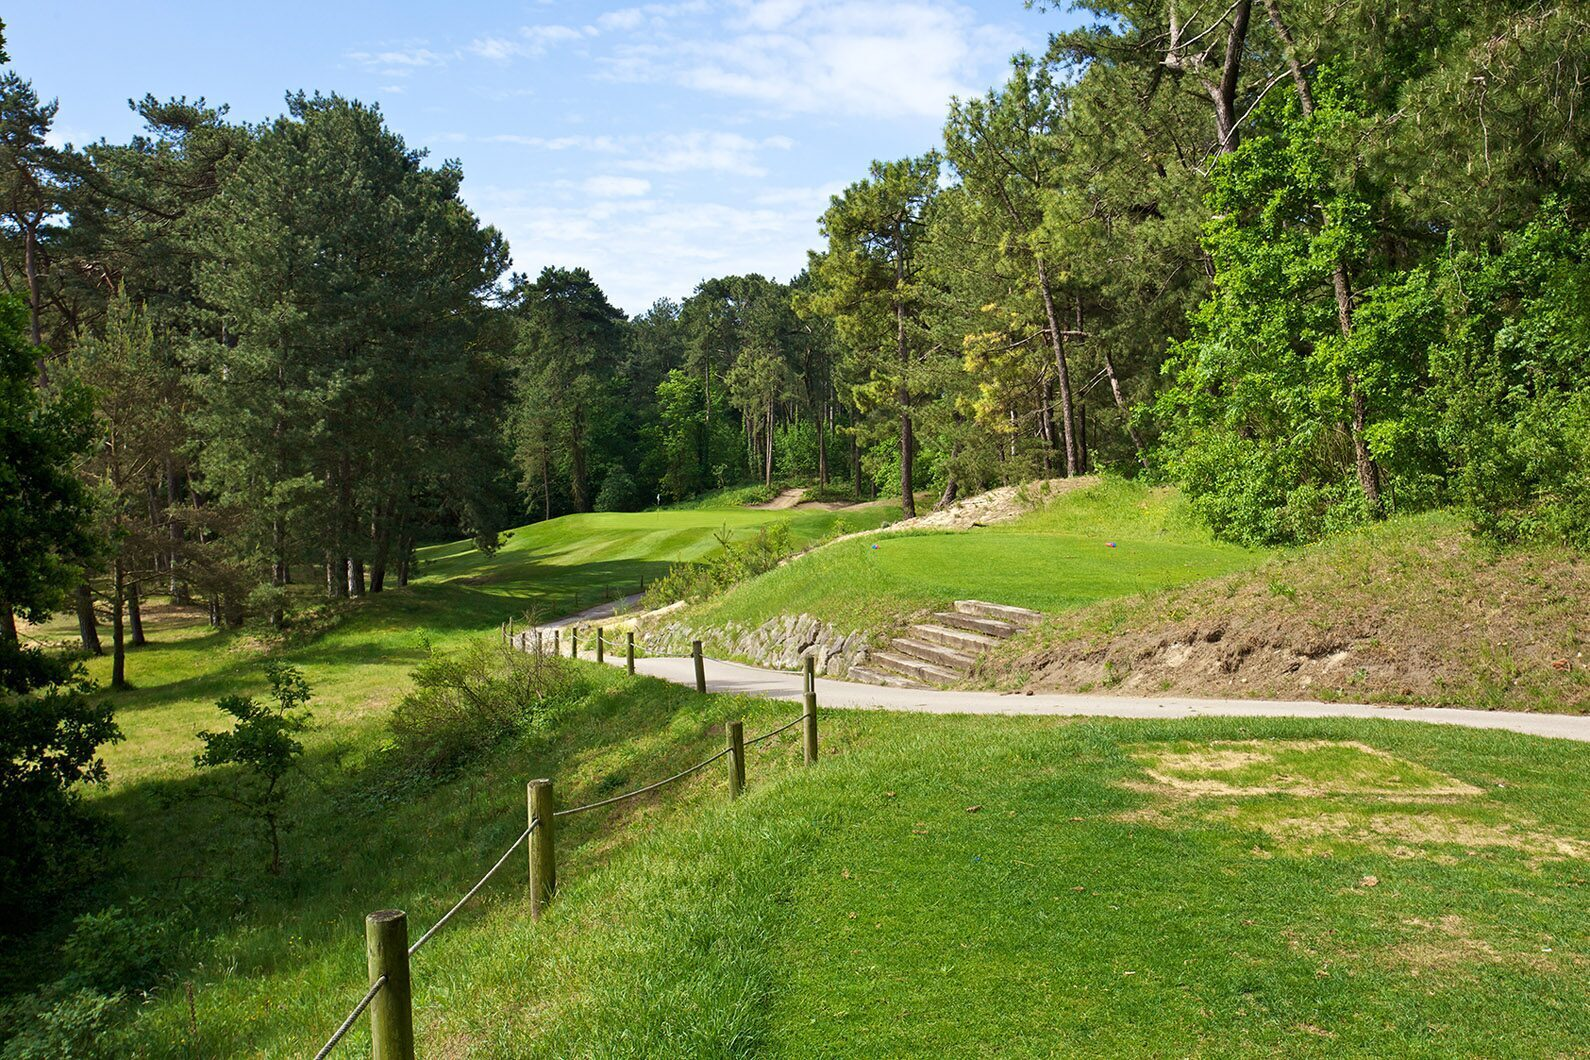 Golf in Equihen-Plage